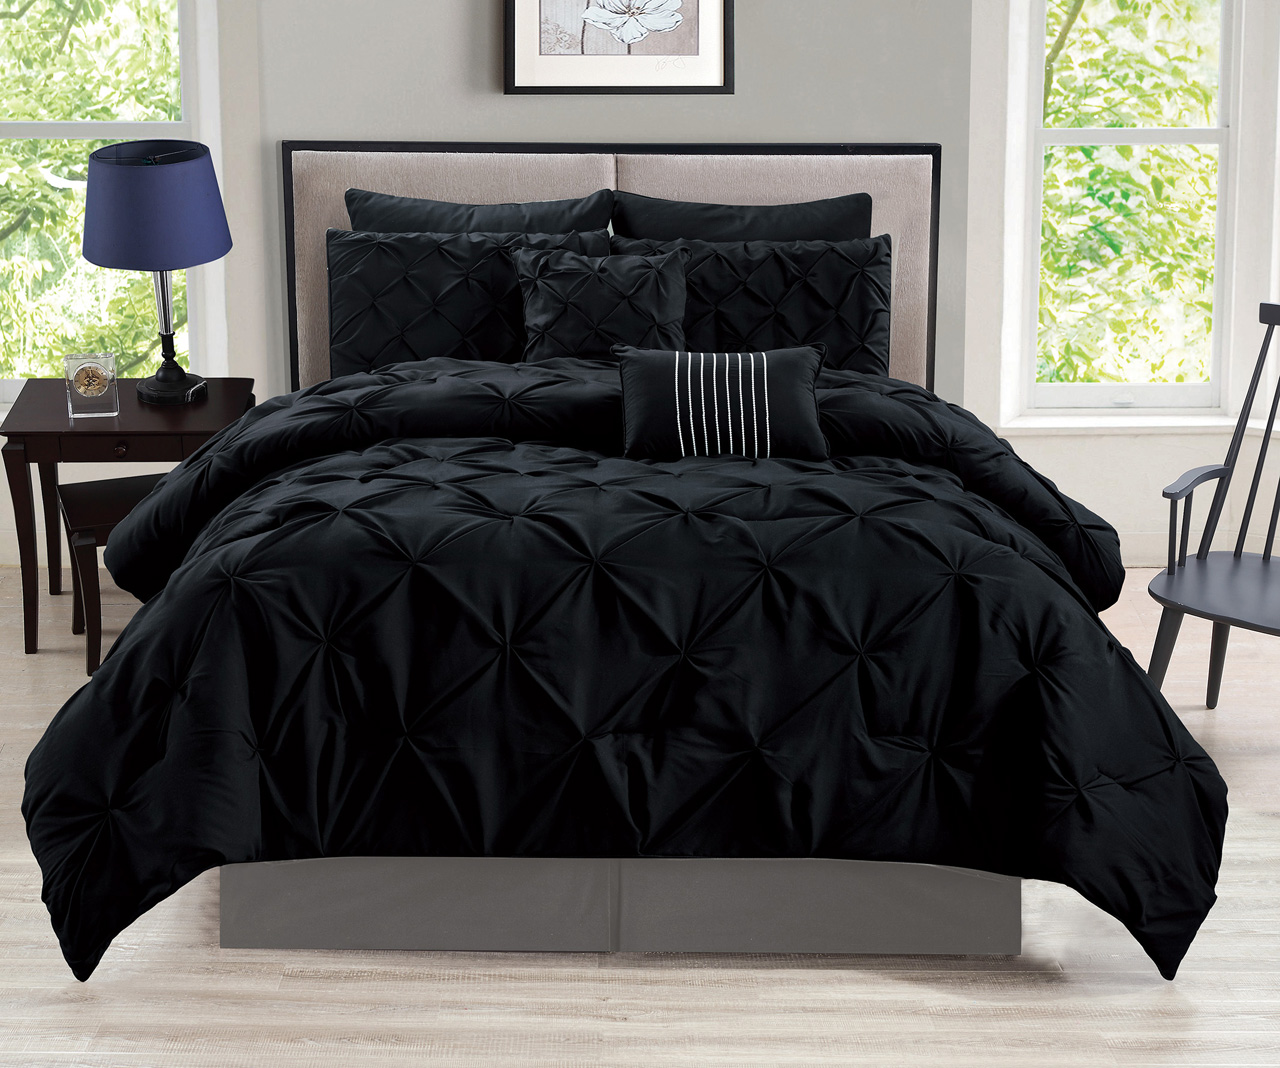 black comforter sets queen 8 Piece Rochelle Pinched Pleat Black Comforter Set black comforter sets queen